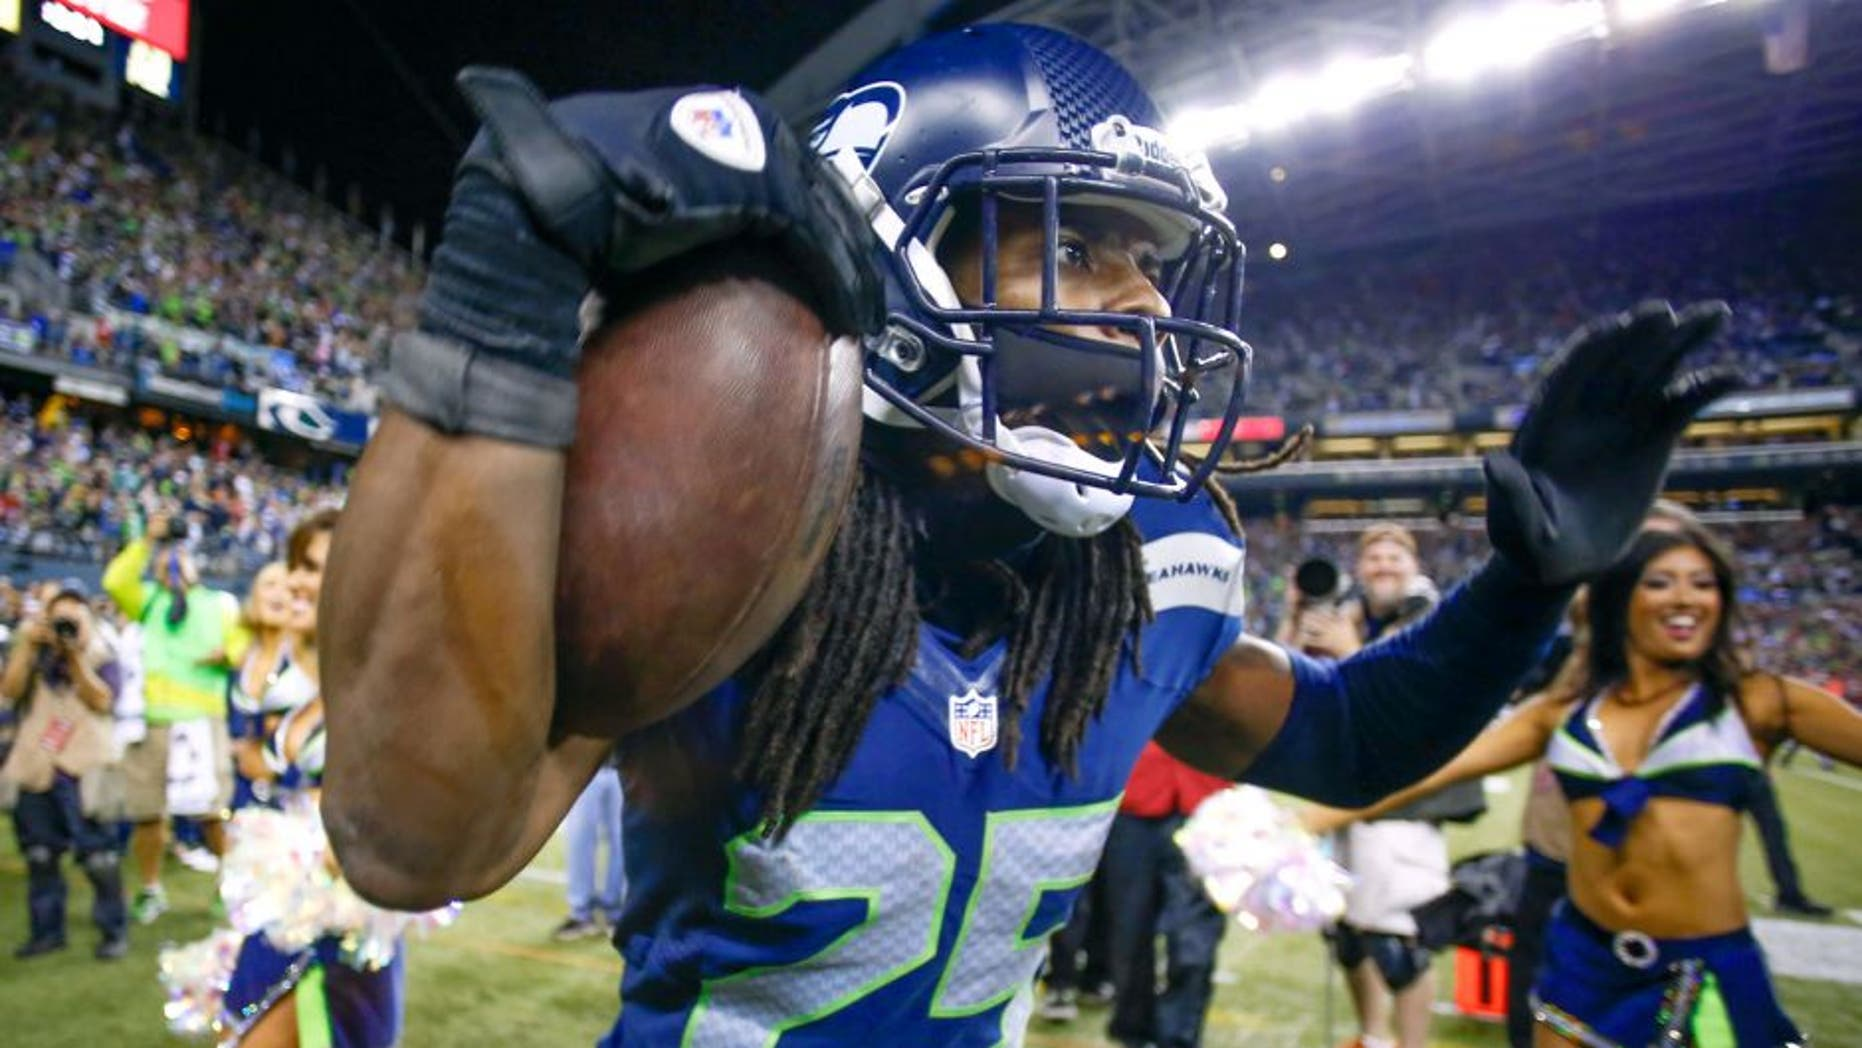 SEATTLE, WA - SEPTEMBER 15: Cornerback Richard Sherman #25 of the Seattle Seahawks celebrates after making an interception in the second half against the San Francisco 49ers at CenturyLink Field on September 15, 2013 in Seattle, Washington. (Photo by Otto Greule Jr/Getty Images)